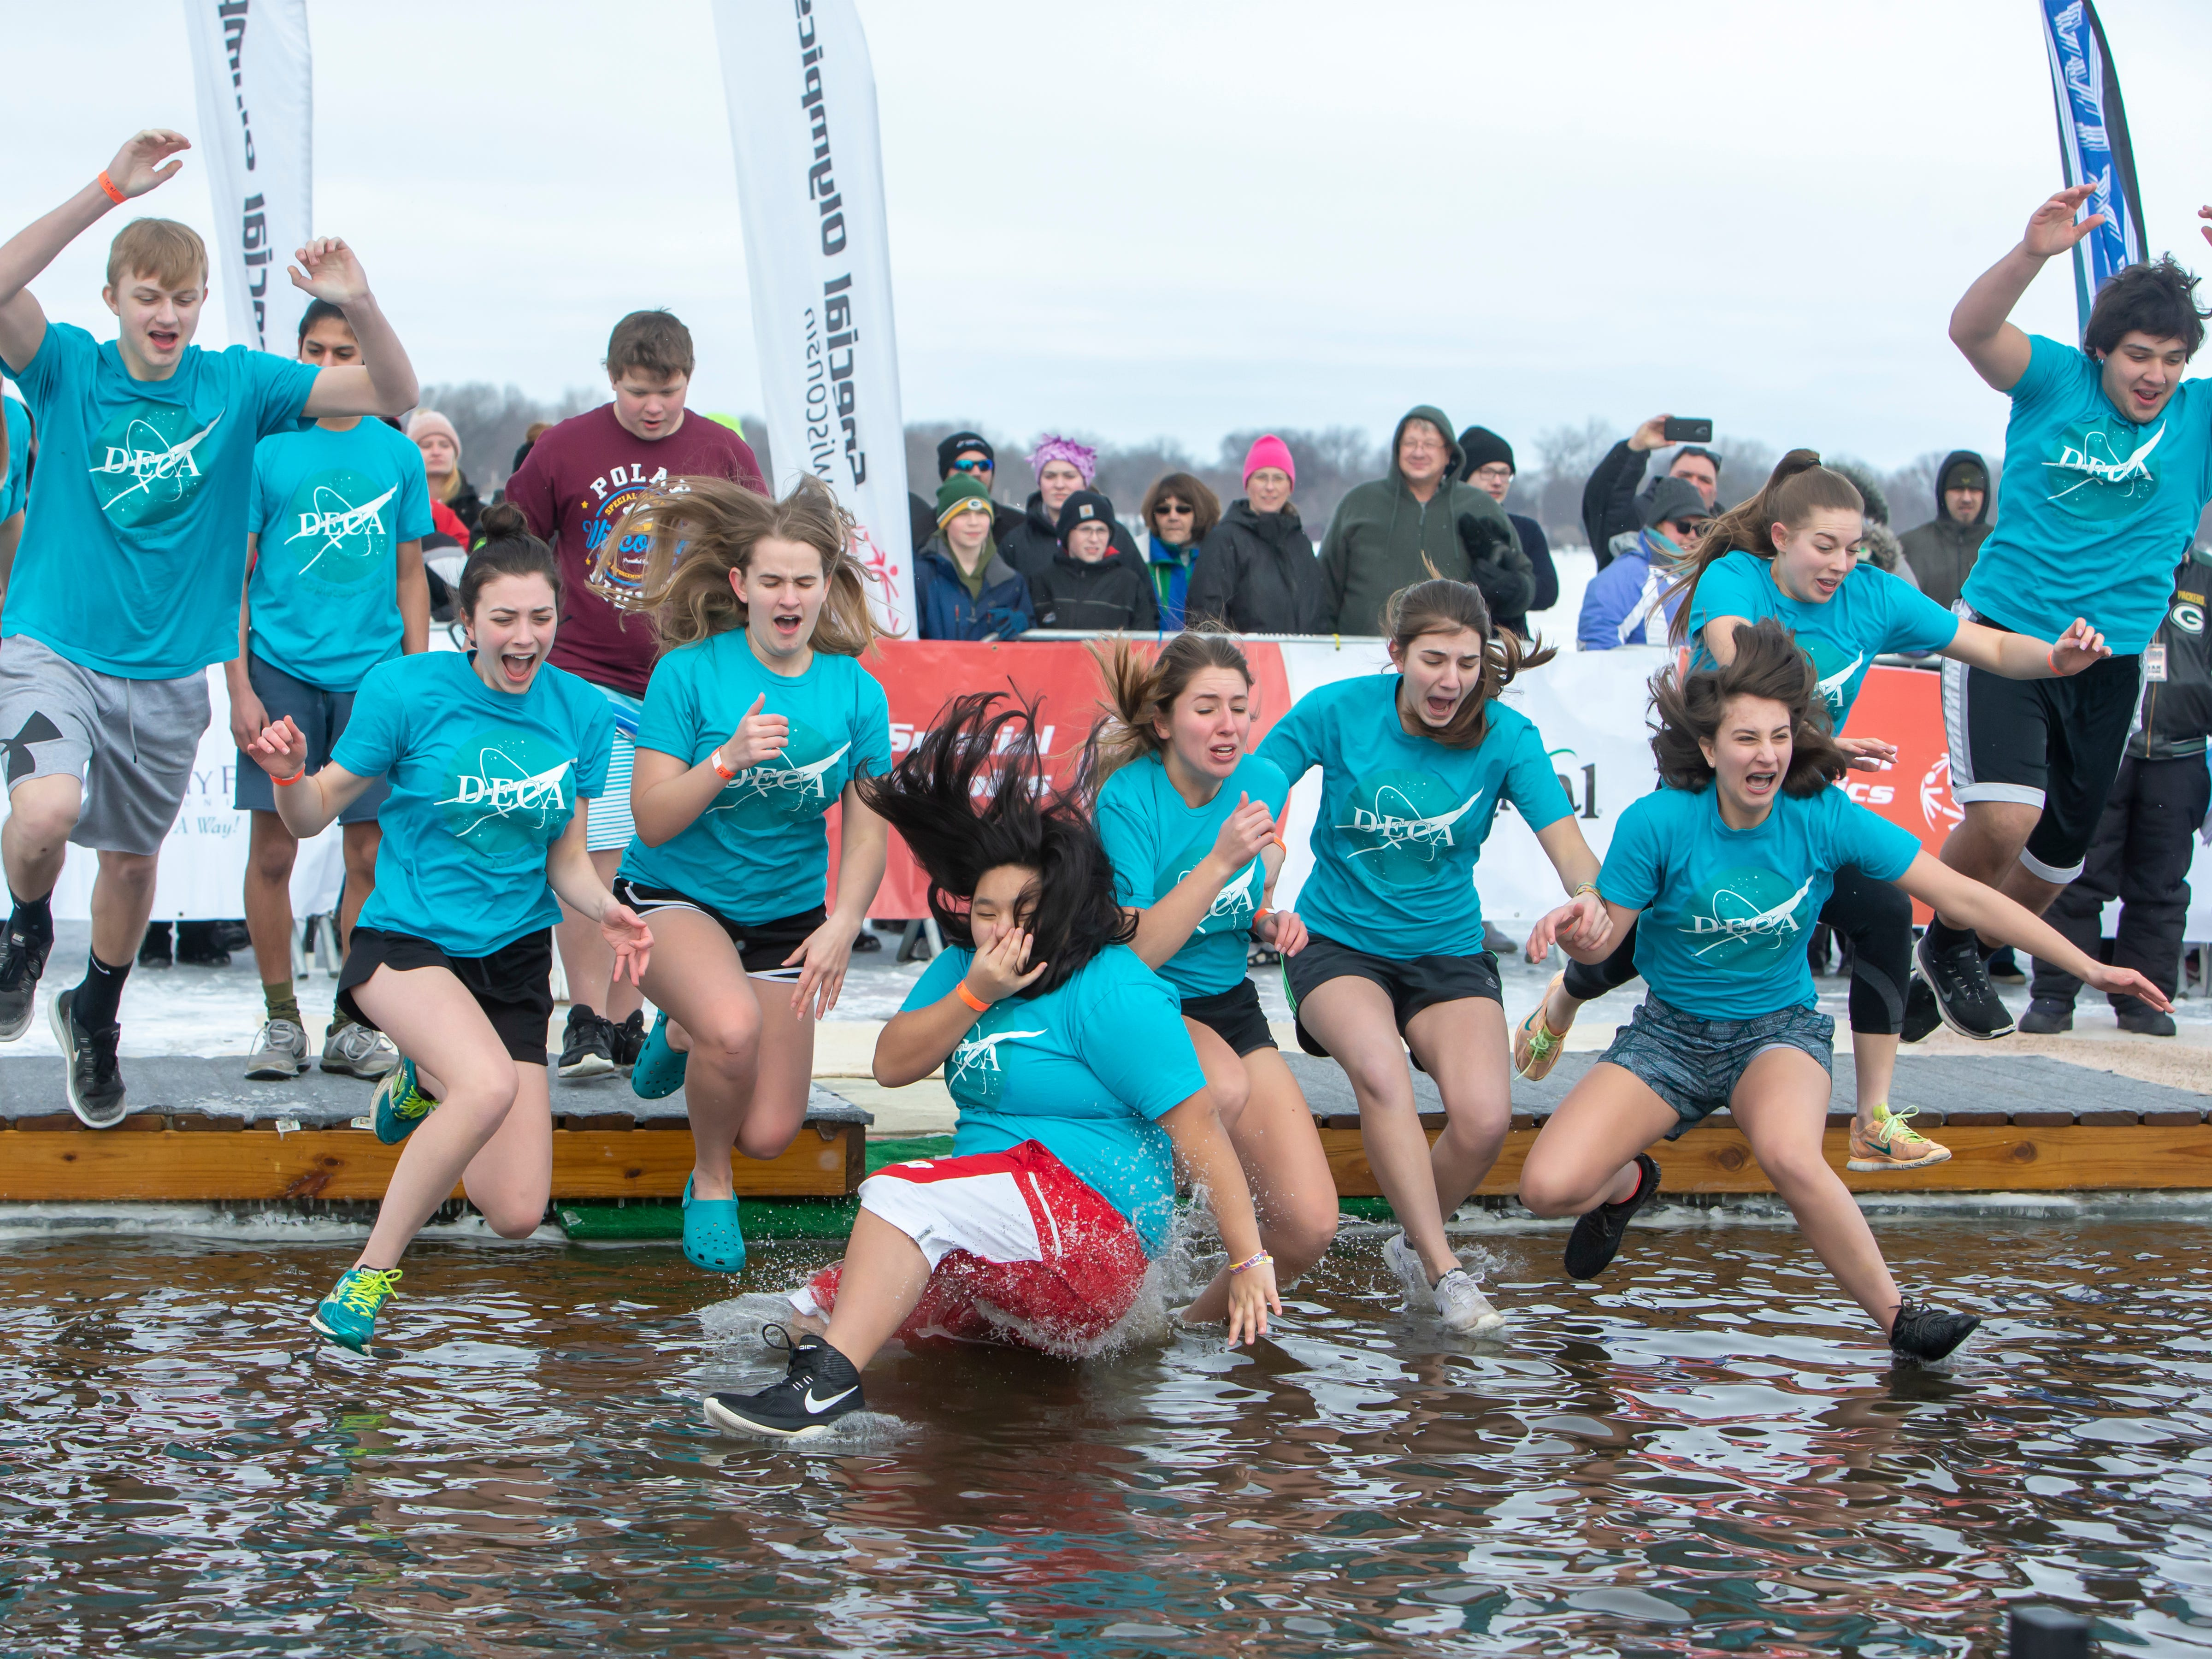 DECA students jump as a group during the Special Olympics Wisconsin Polar Plunge in Oshkosh, Wis., on Saturday, February 16, 2019, at Miller's Bay in Menominee Park.